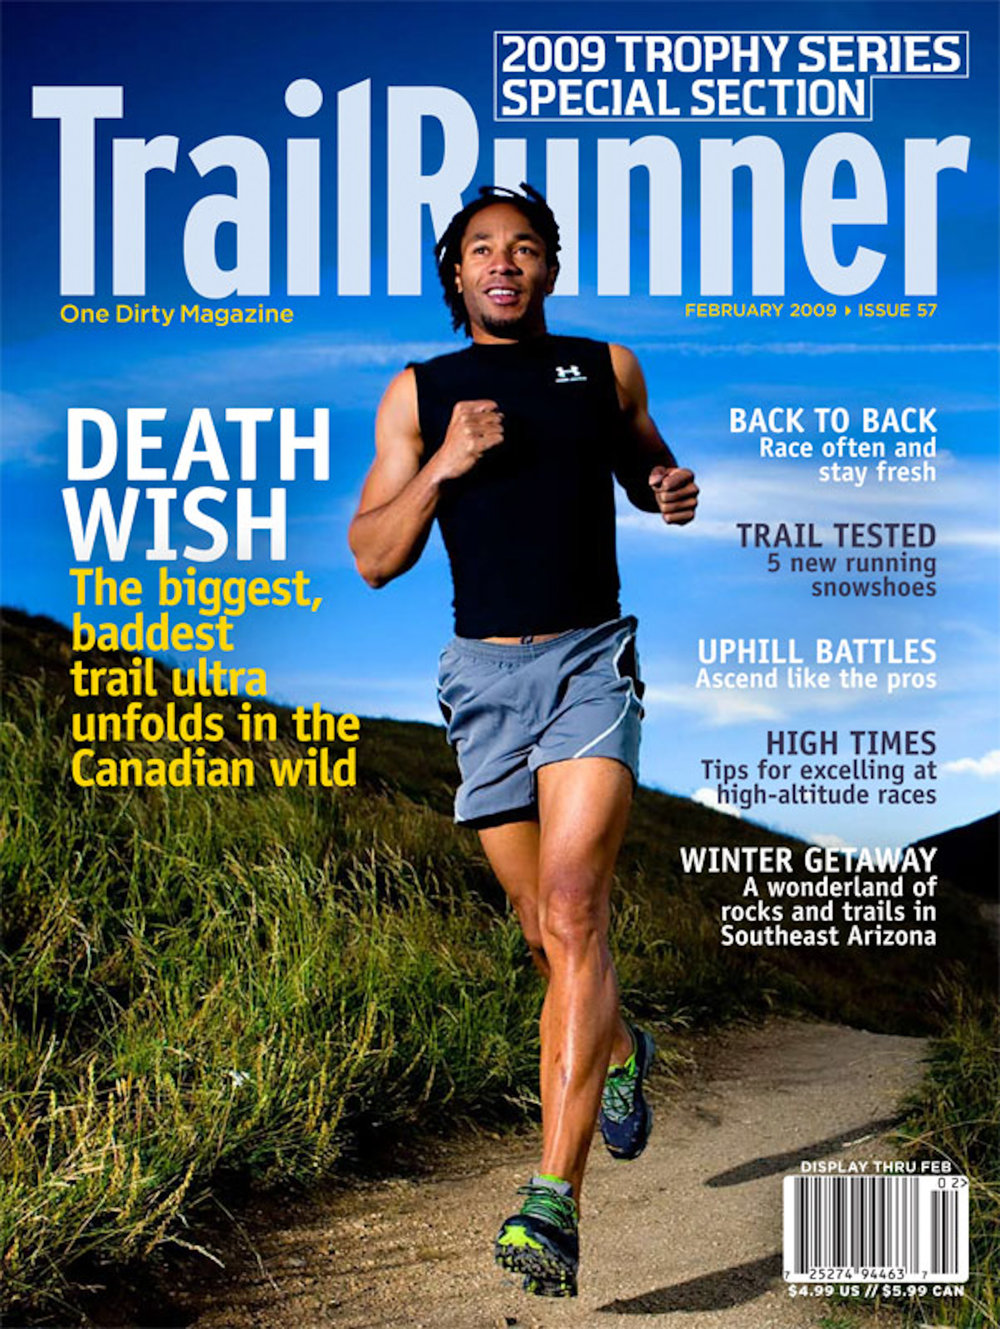 TR_Cover_Feb09_L.jpg